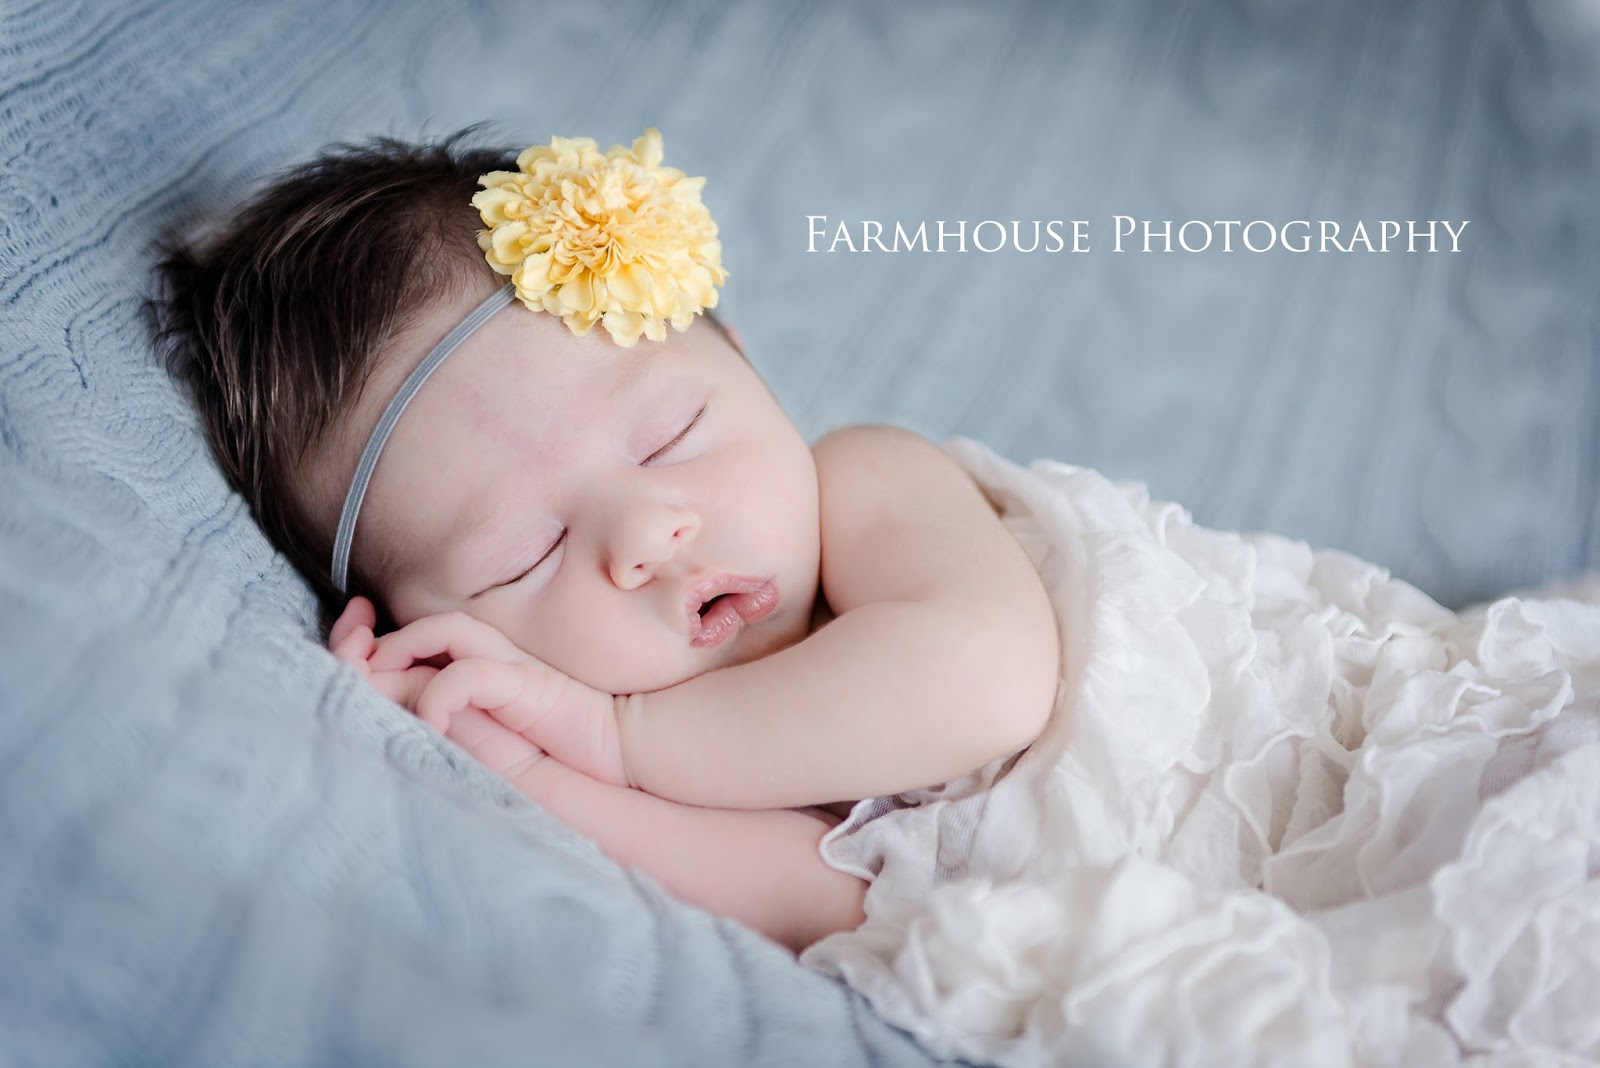 This newborn photography session was taken at my new studio baby noelle was a precious 15 days new what a wonderful family to work with